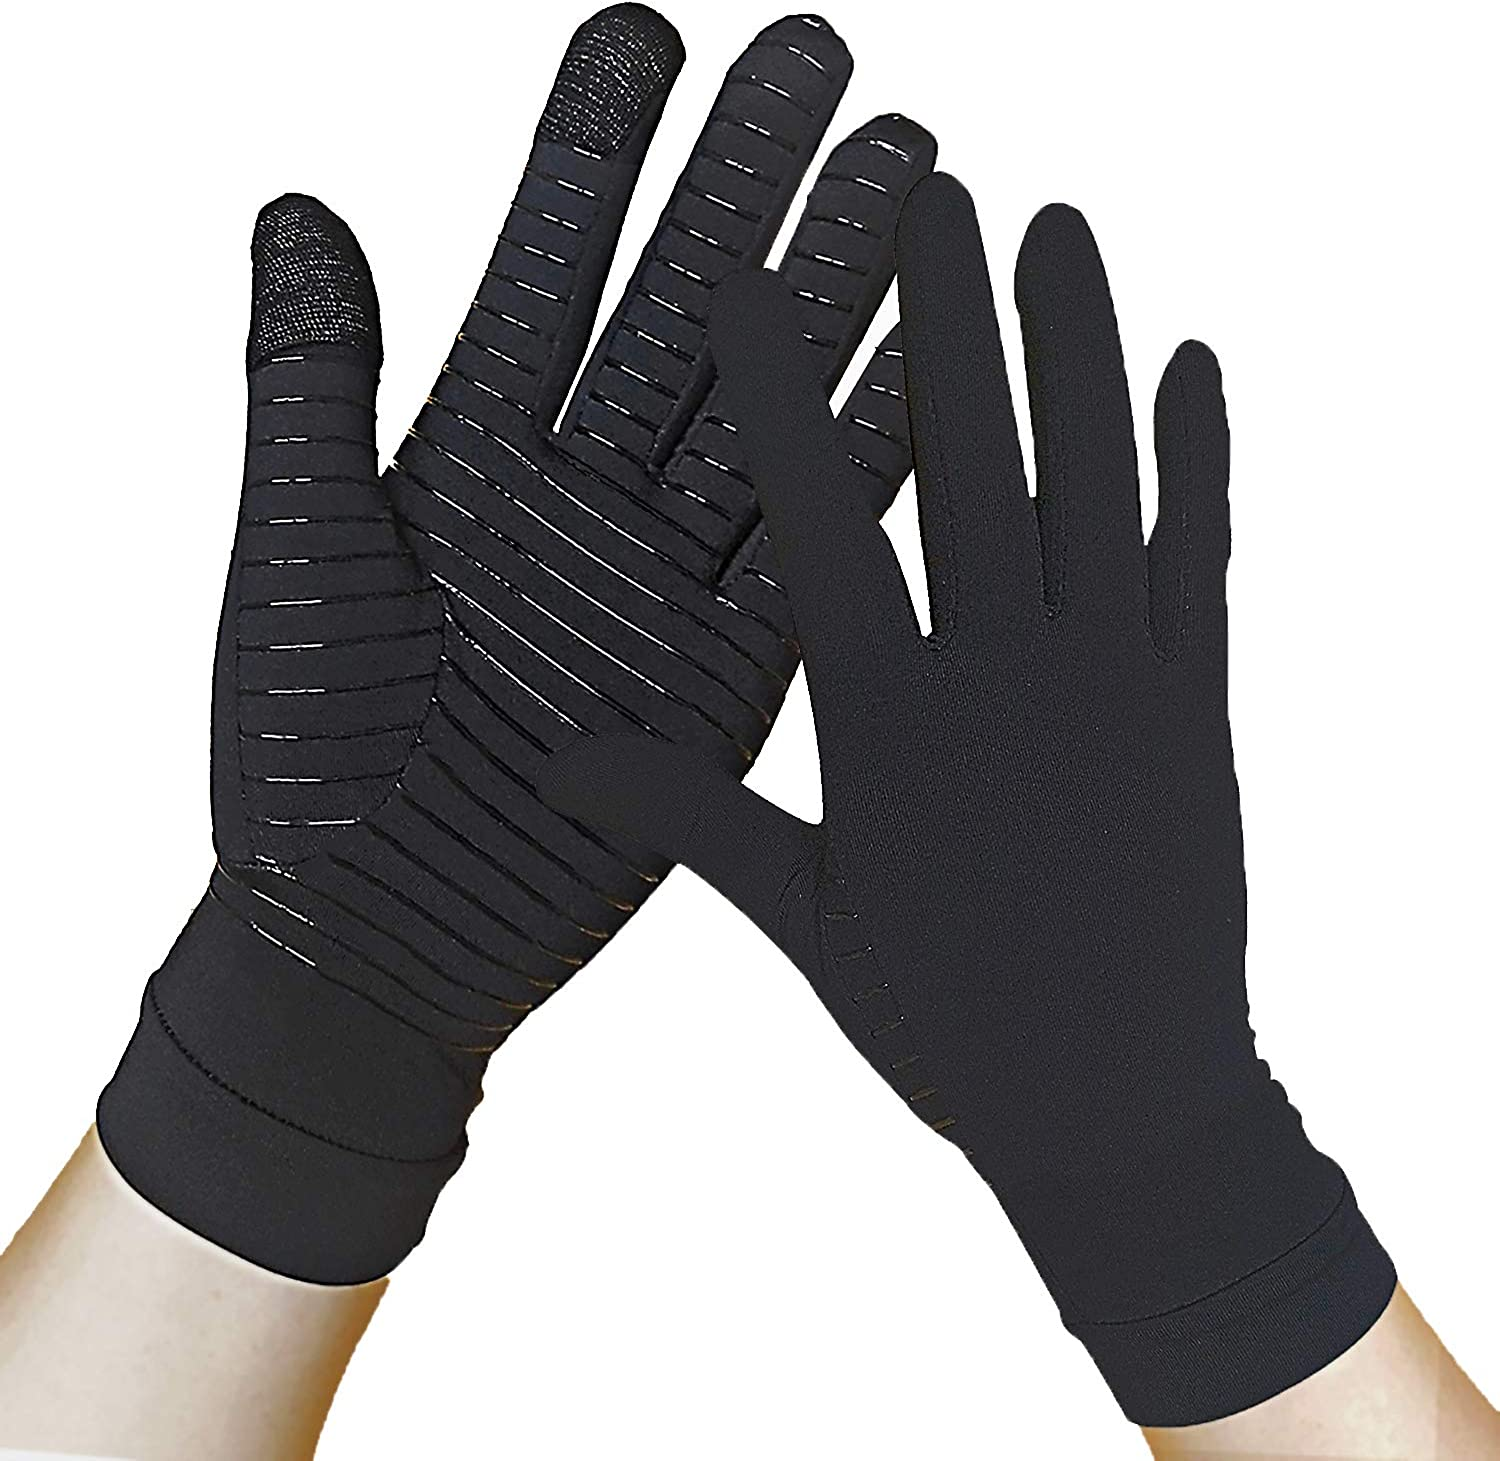 Full Finger Bombing new work Copper Arthritis Compression Pai Hand Gloves Finally popular brand Relieve